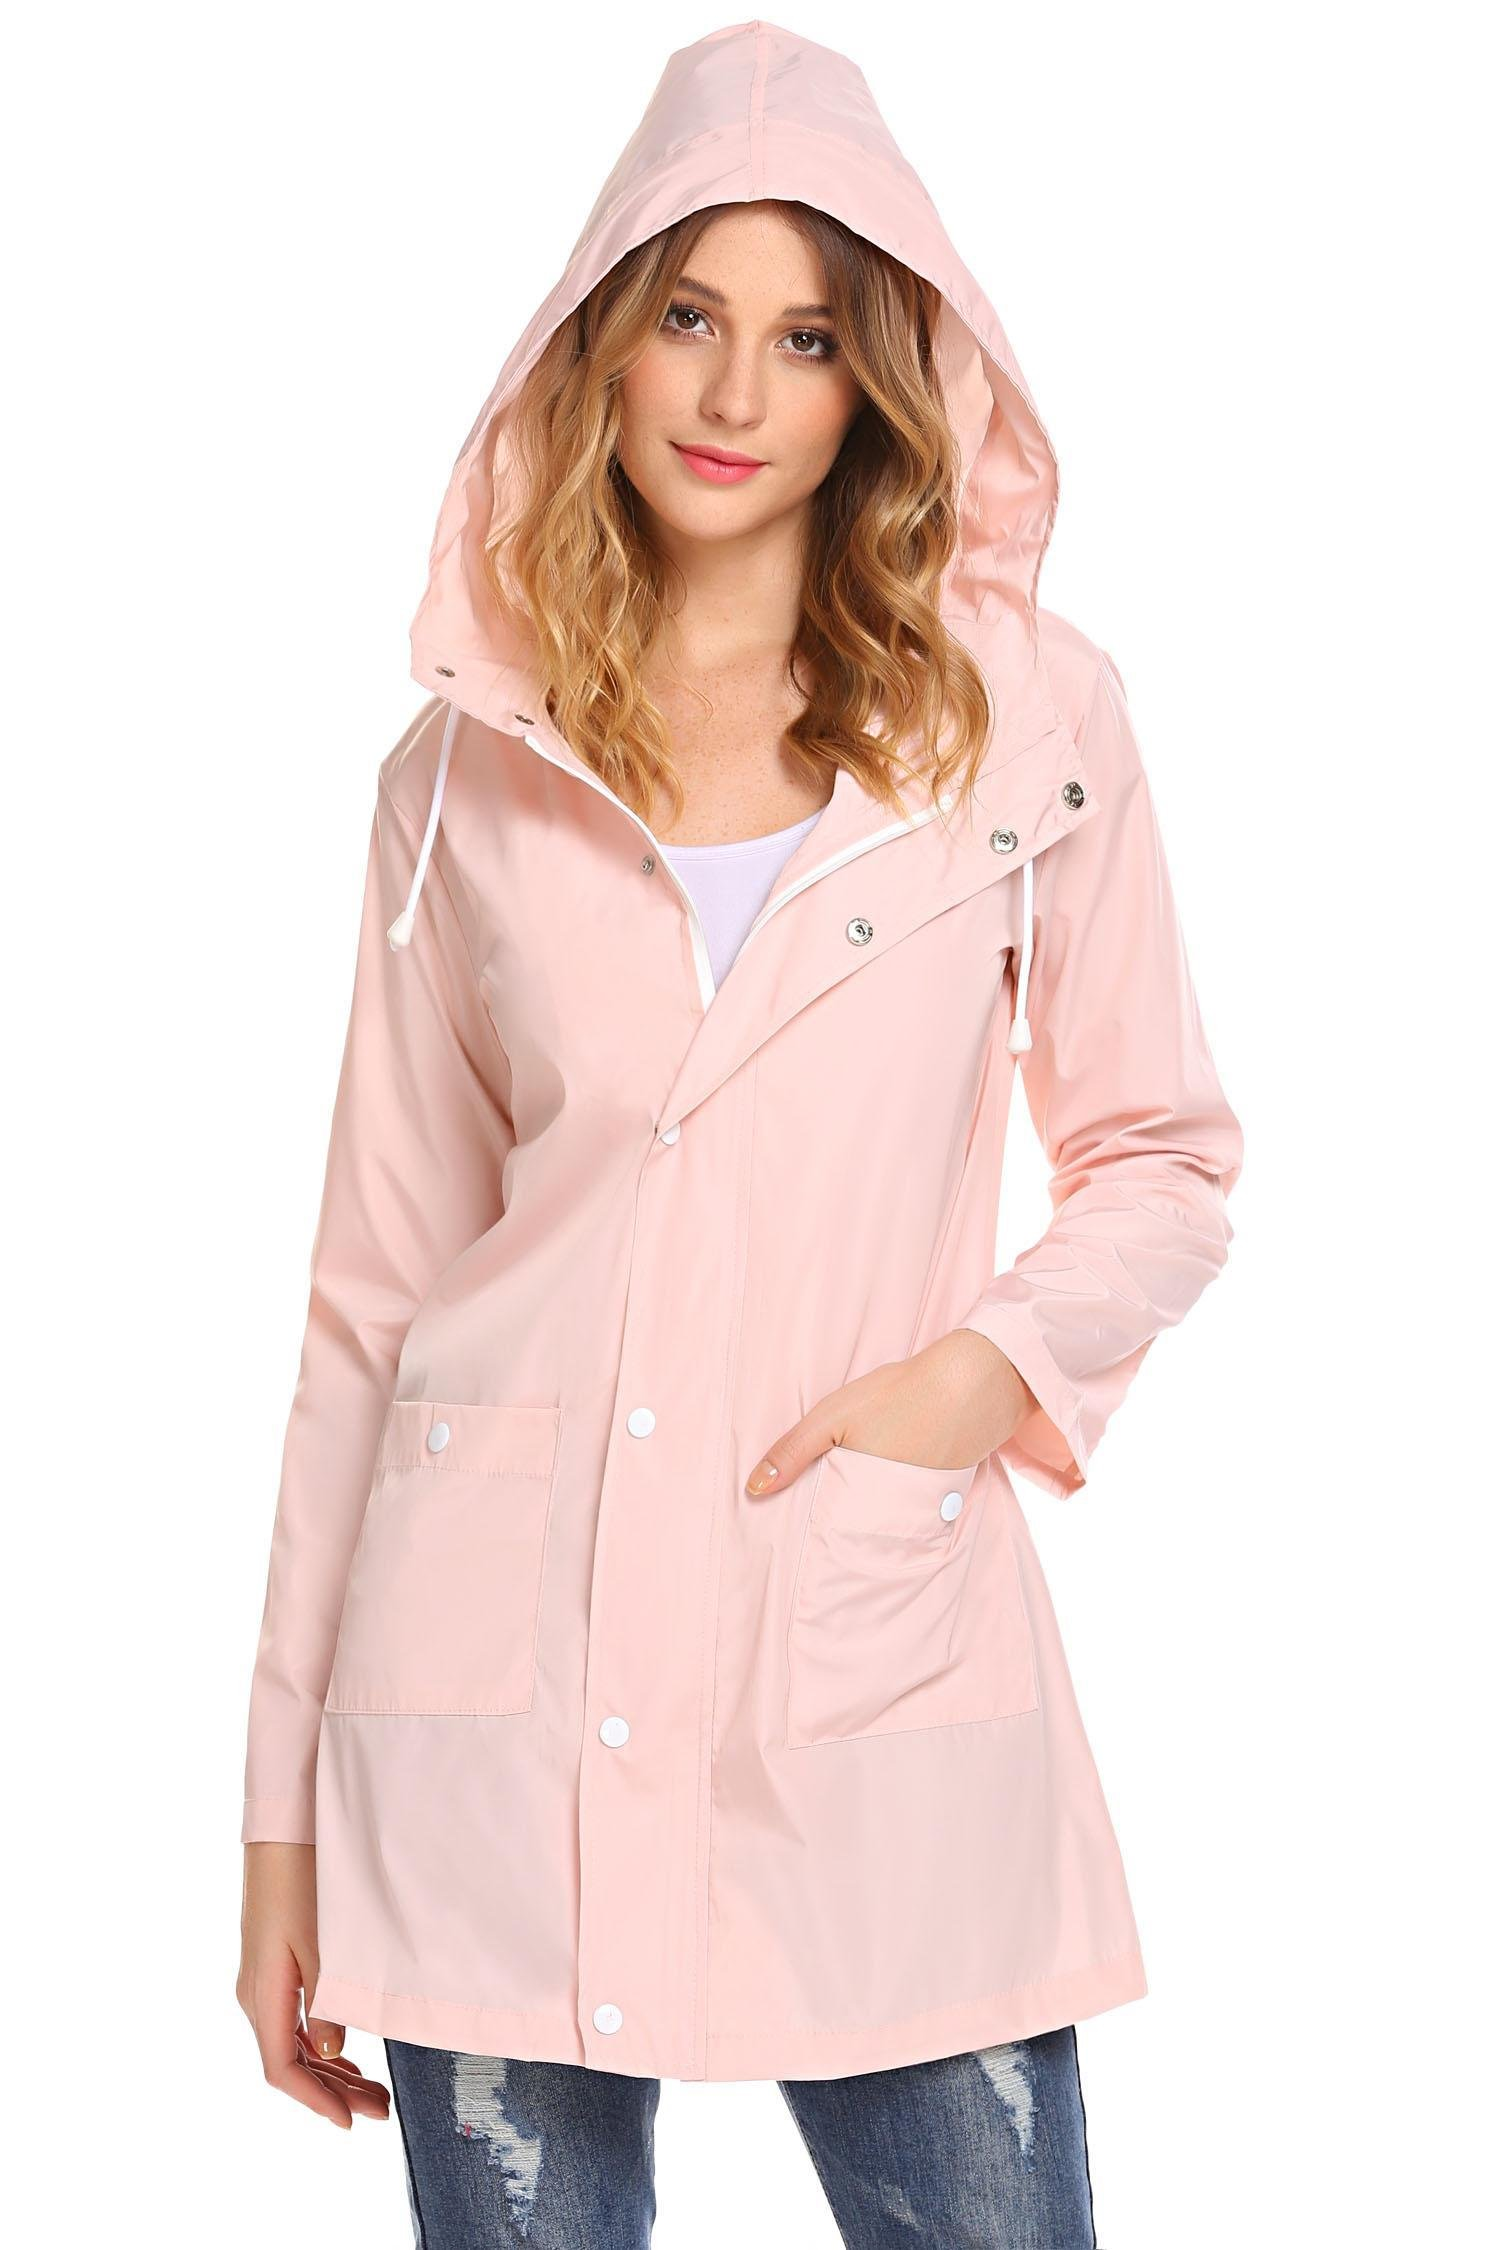 SoTeer Waterproof Lightweight Rain Jacket Active Outdoor Hooded Raincoat for Women Pink M